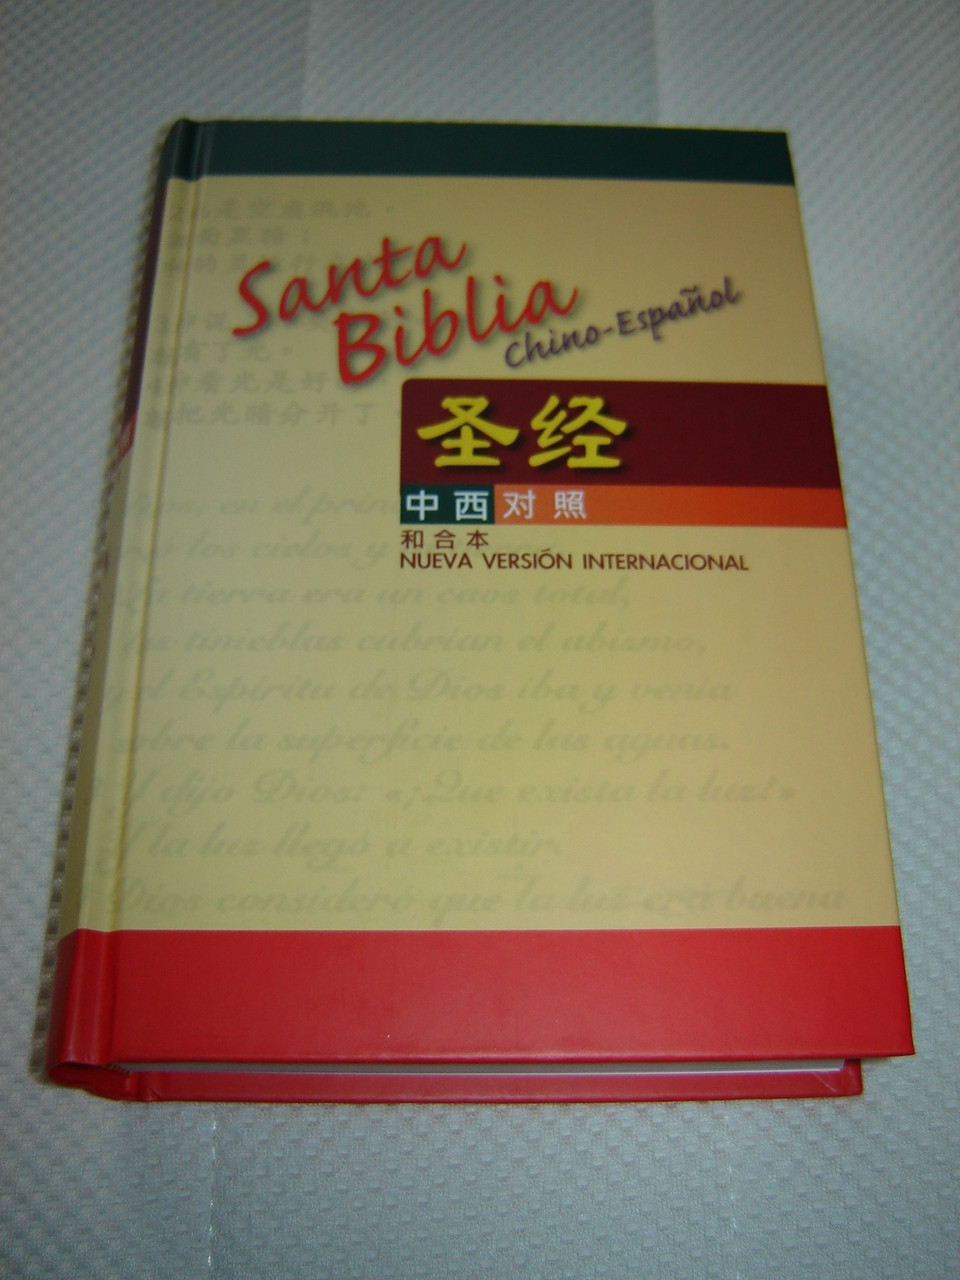 Chinese - Spanish Bilingual Holy Bible / Santa Biblia